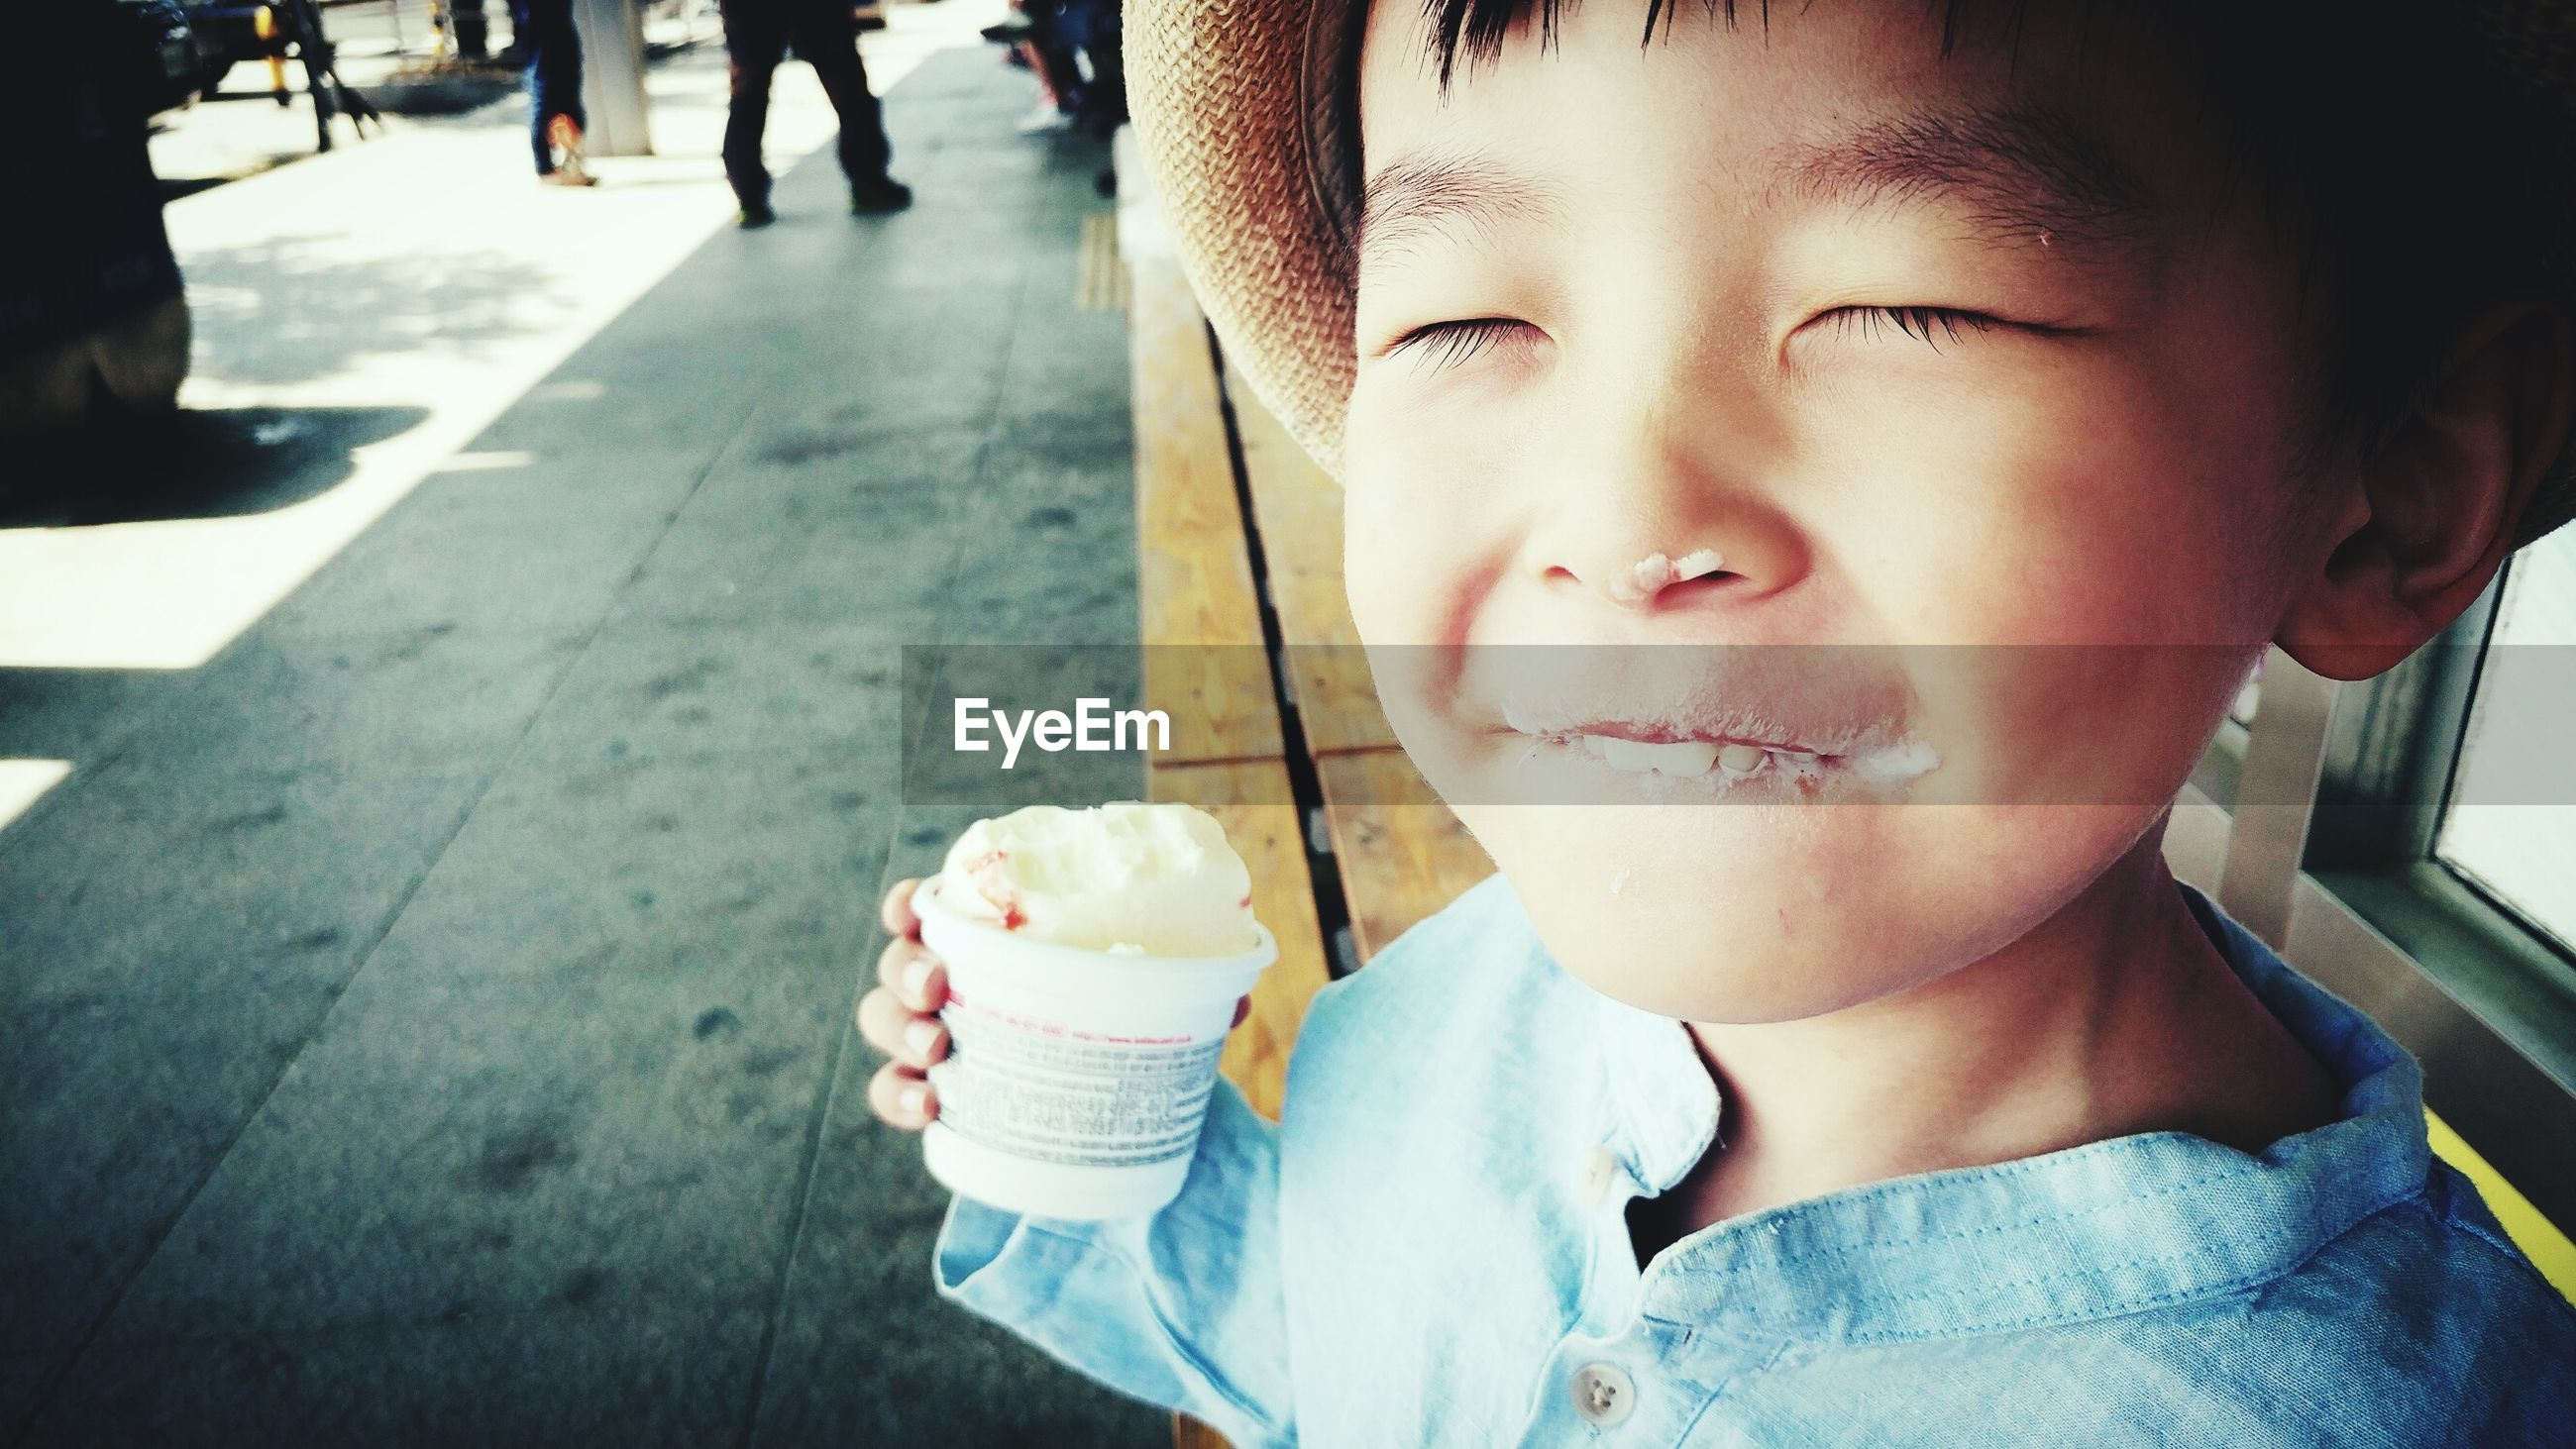 sweet food, ice cream, food and drink, frozen food, one person, real people, dessert, unhealthy eating, childhood, food, indulgence, boys, day, frozen sweet food, temptation, ice cream cone, outdoors, lifestyles, close-up, freshness, ready-to-eat, people